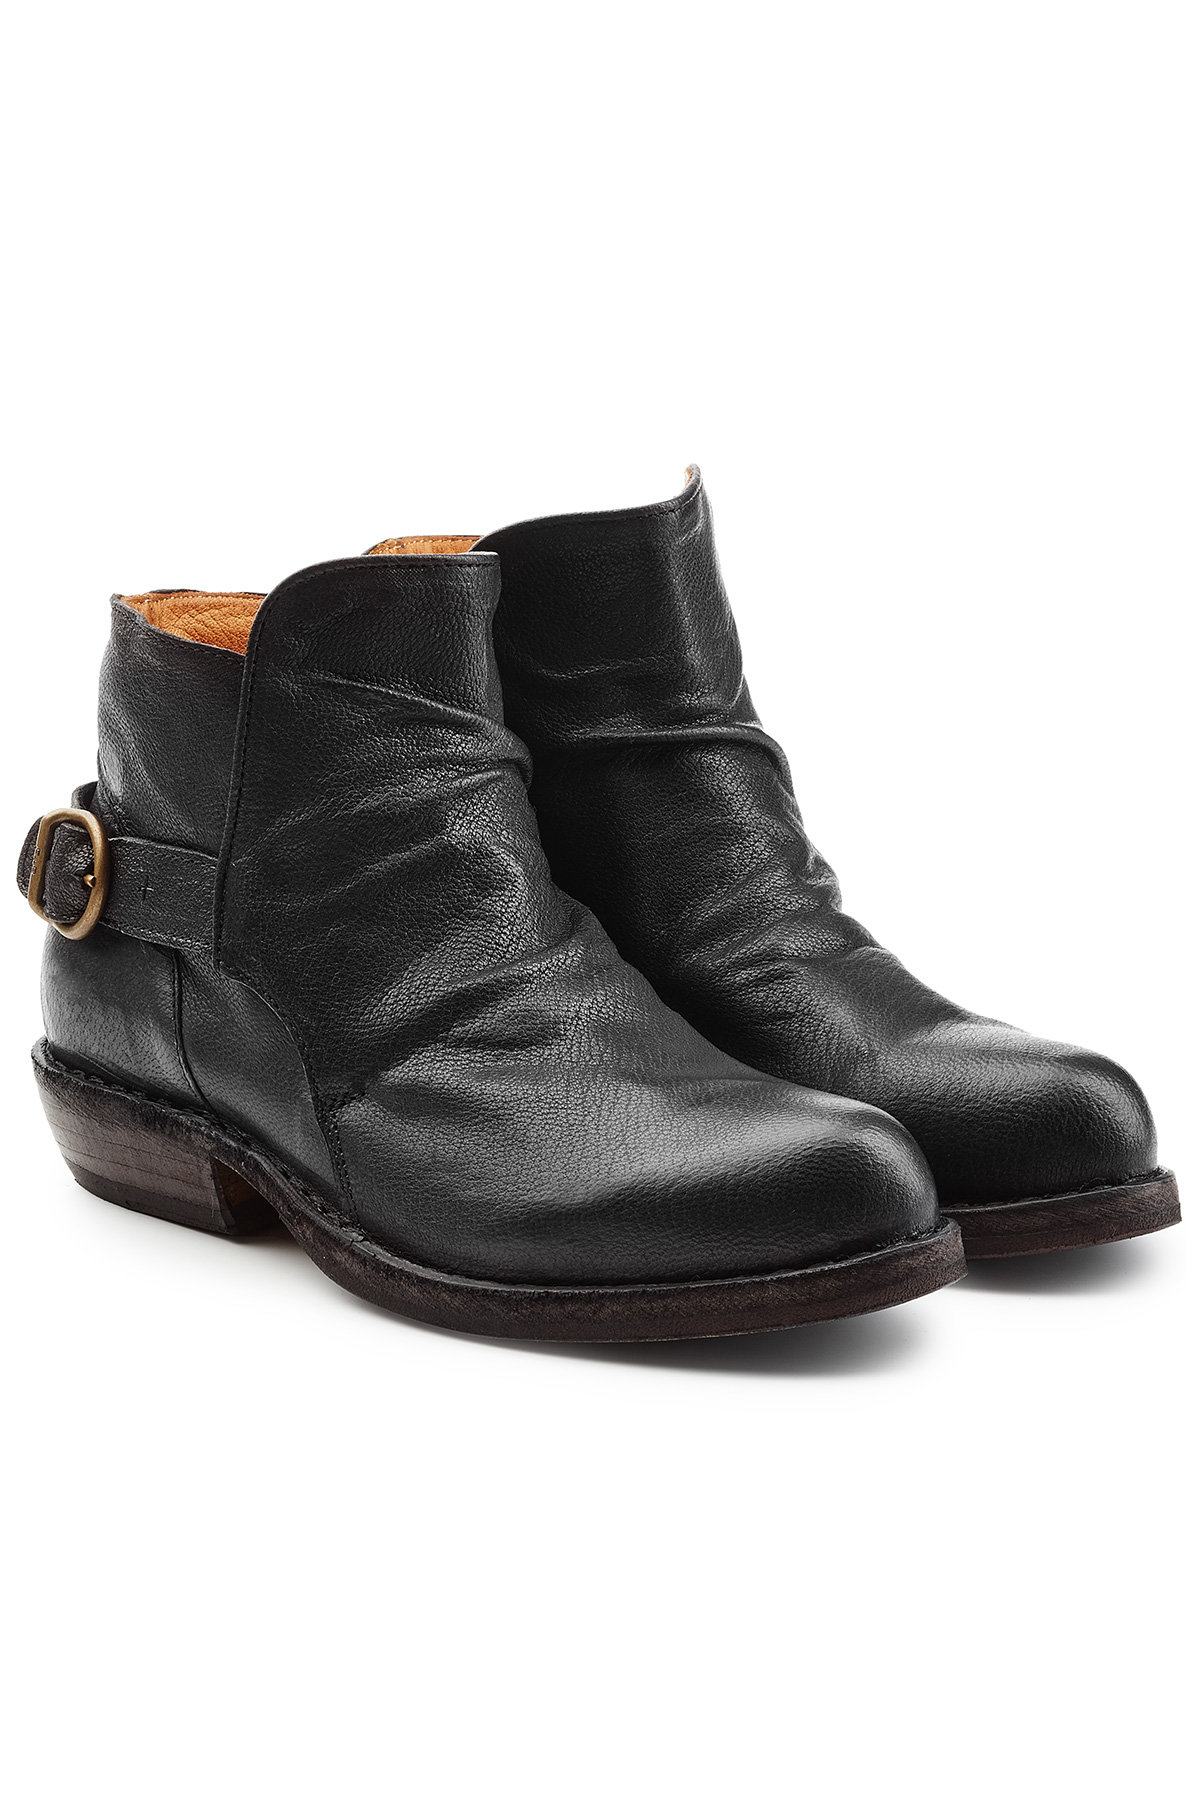 FIORENTINI + BAKER Elk Leather Boots with Lace-Up Front Gr. IT 35 05vuVHohl